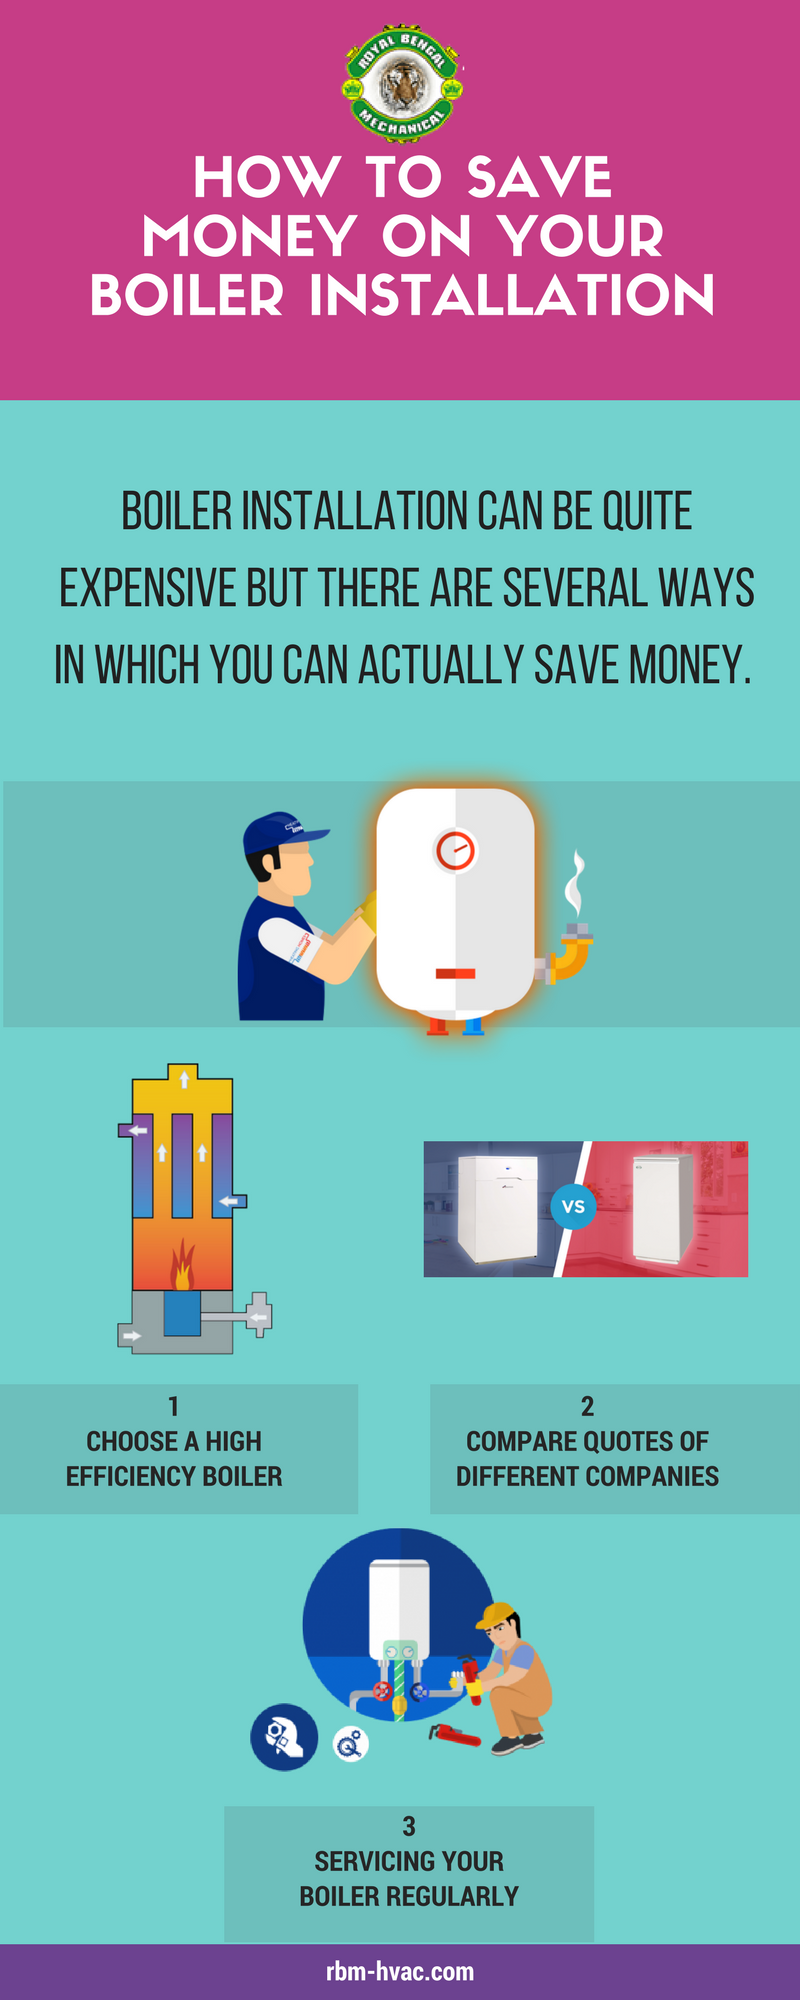 Boiler Installation Can Be Quite Expensive But There Are Several Ways In Which You Can Actually Save Money Boiler Installation Saving Money Hvac Infographic